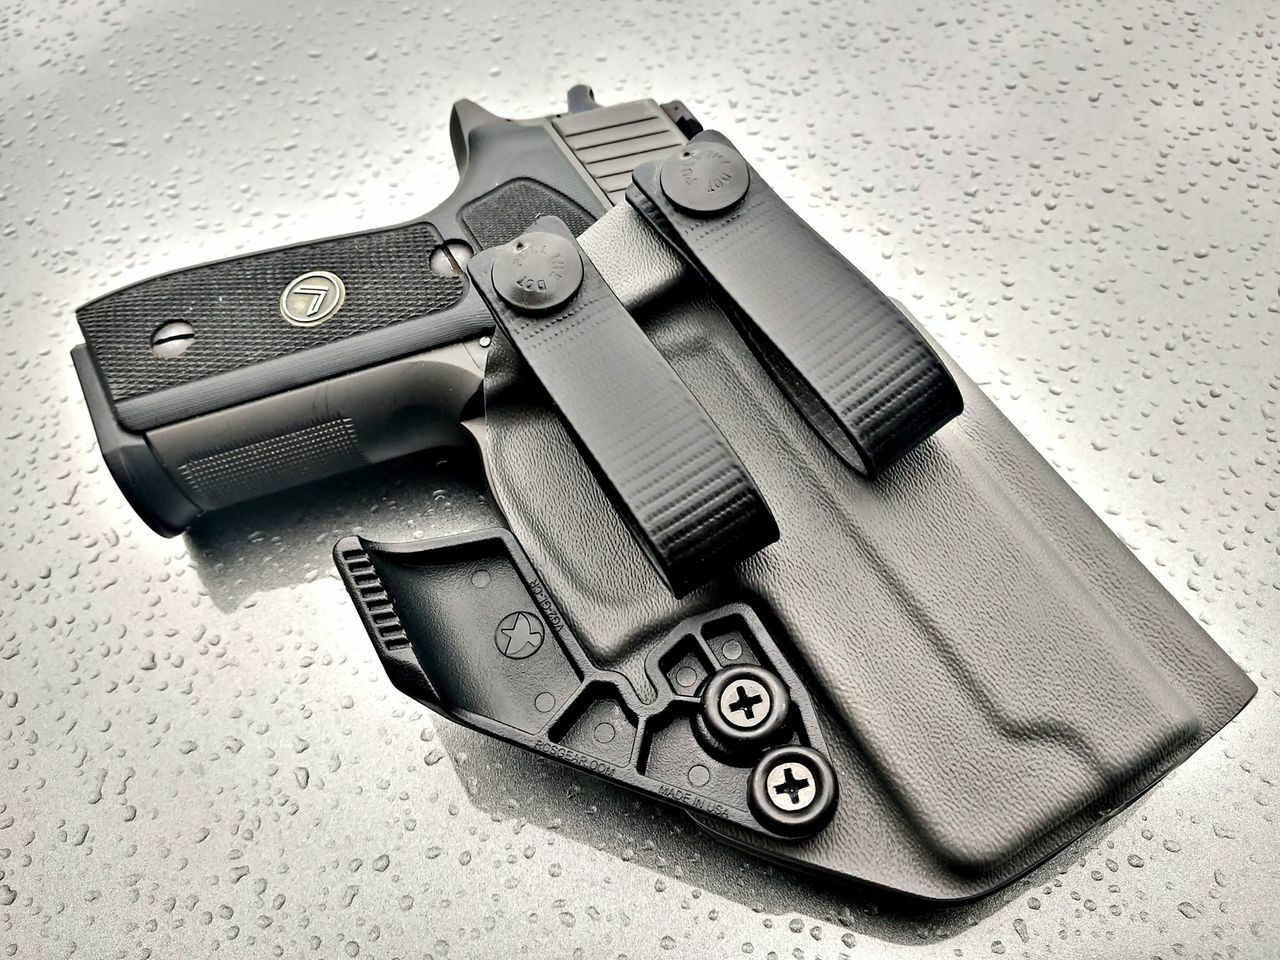 Sig P229 Appendix Carry Holster with Soft Loops